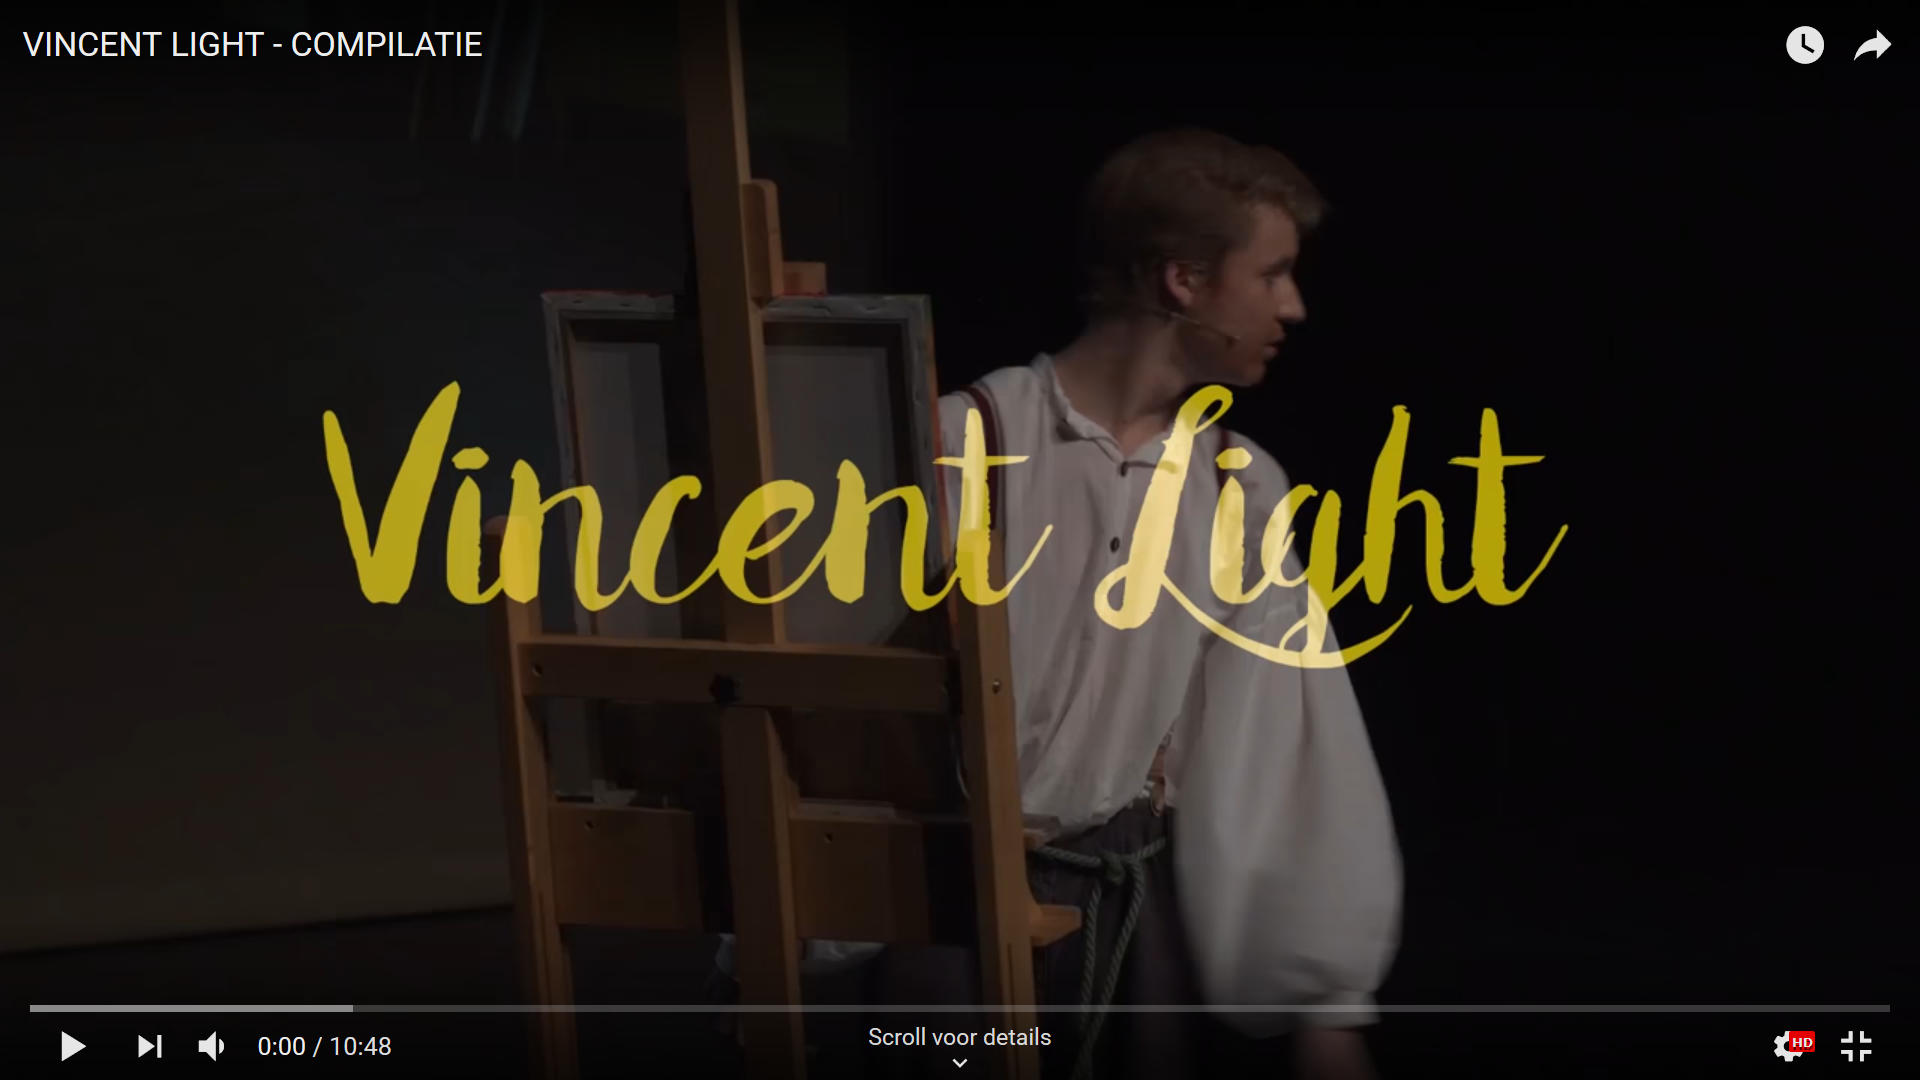 Vincent Light - Compilatie | Klik en bekijk de video op Youtube